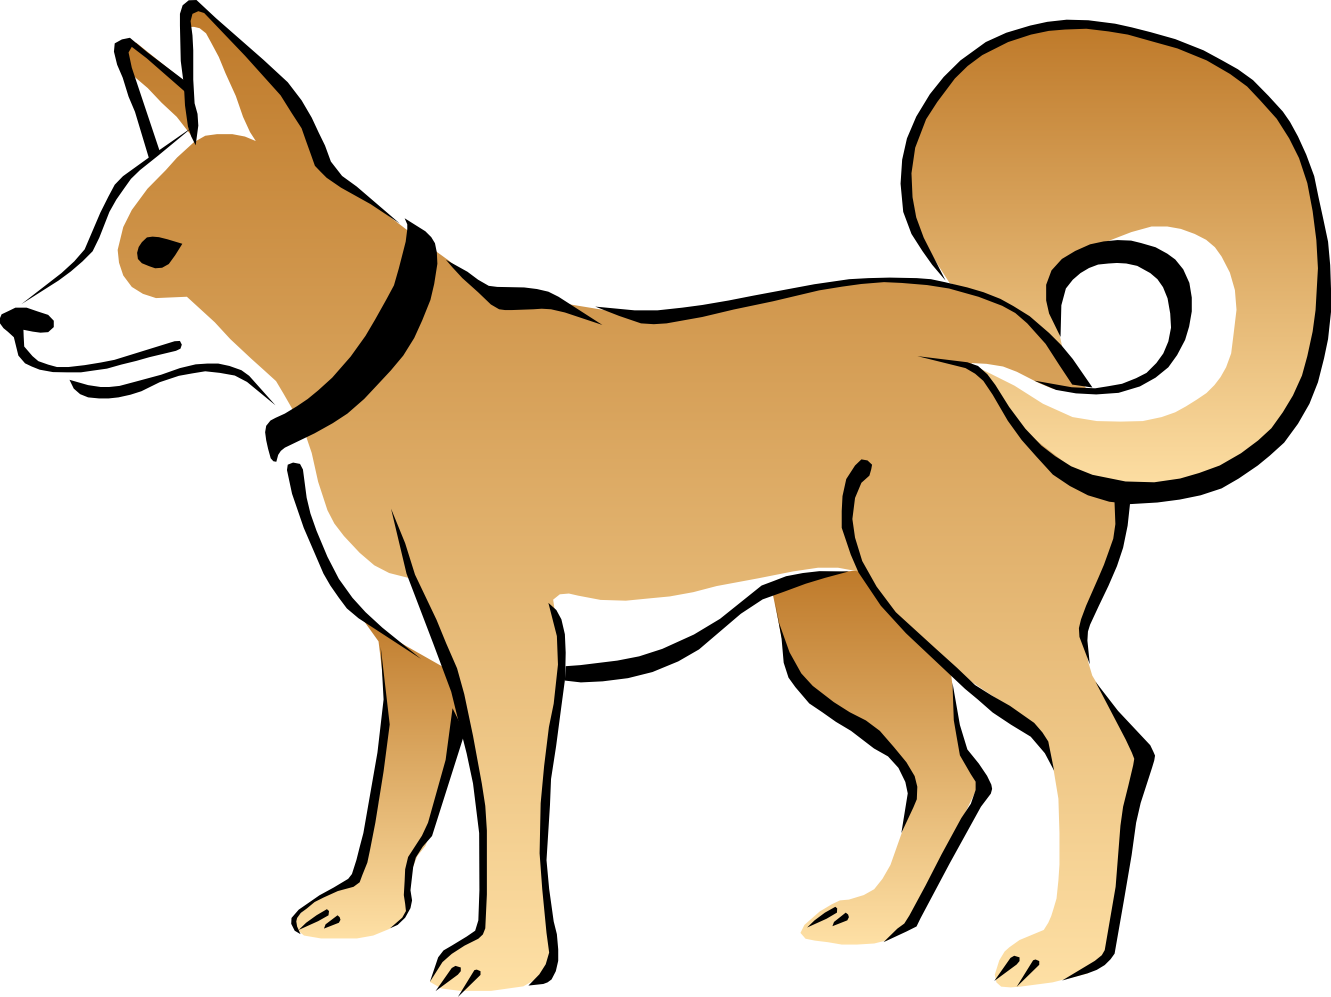 Dog on leash clipart banner transparent download Dog png image, dogs, puppy pictures free download banner transparent download